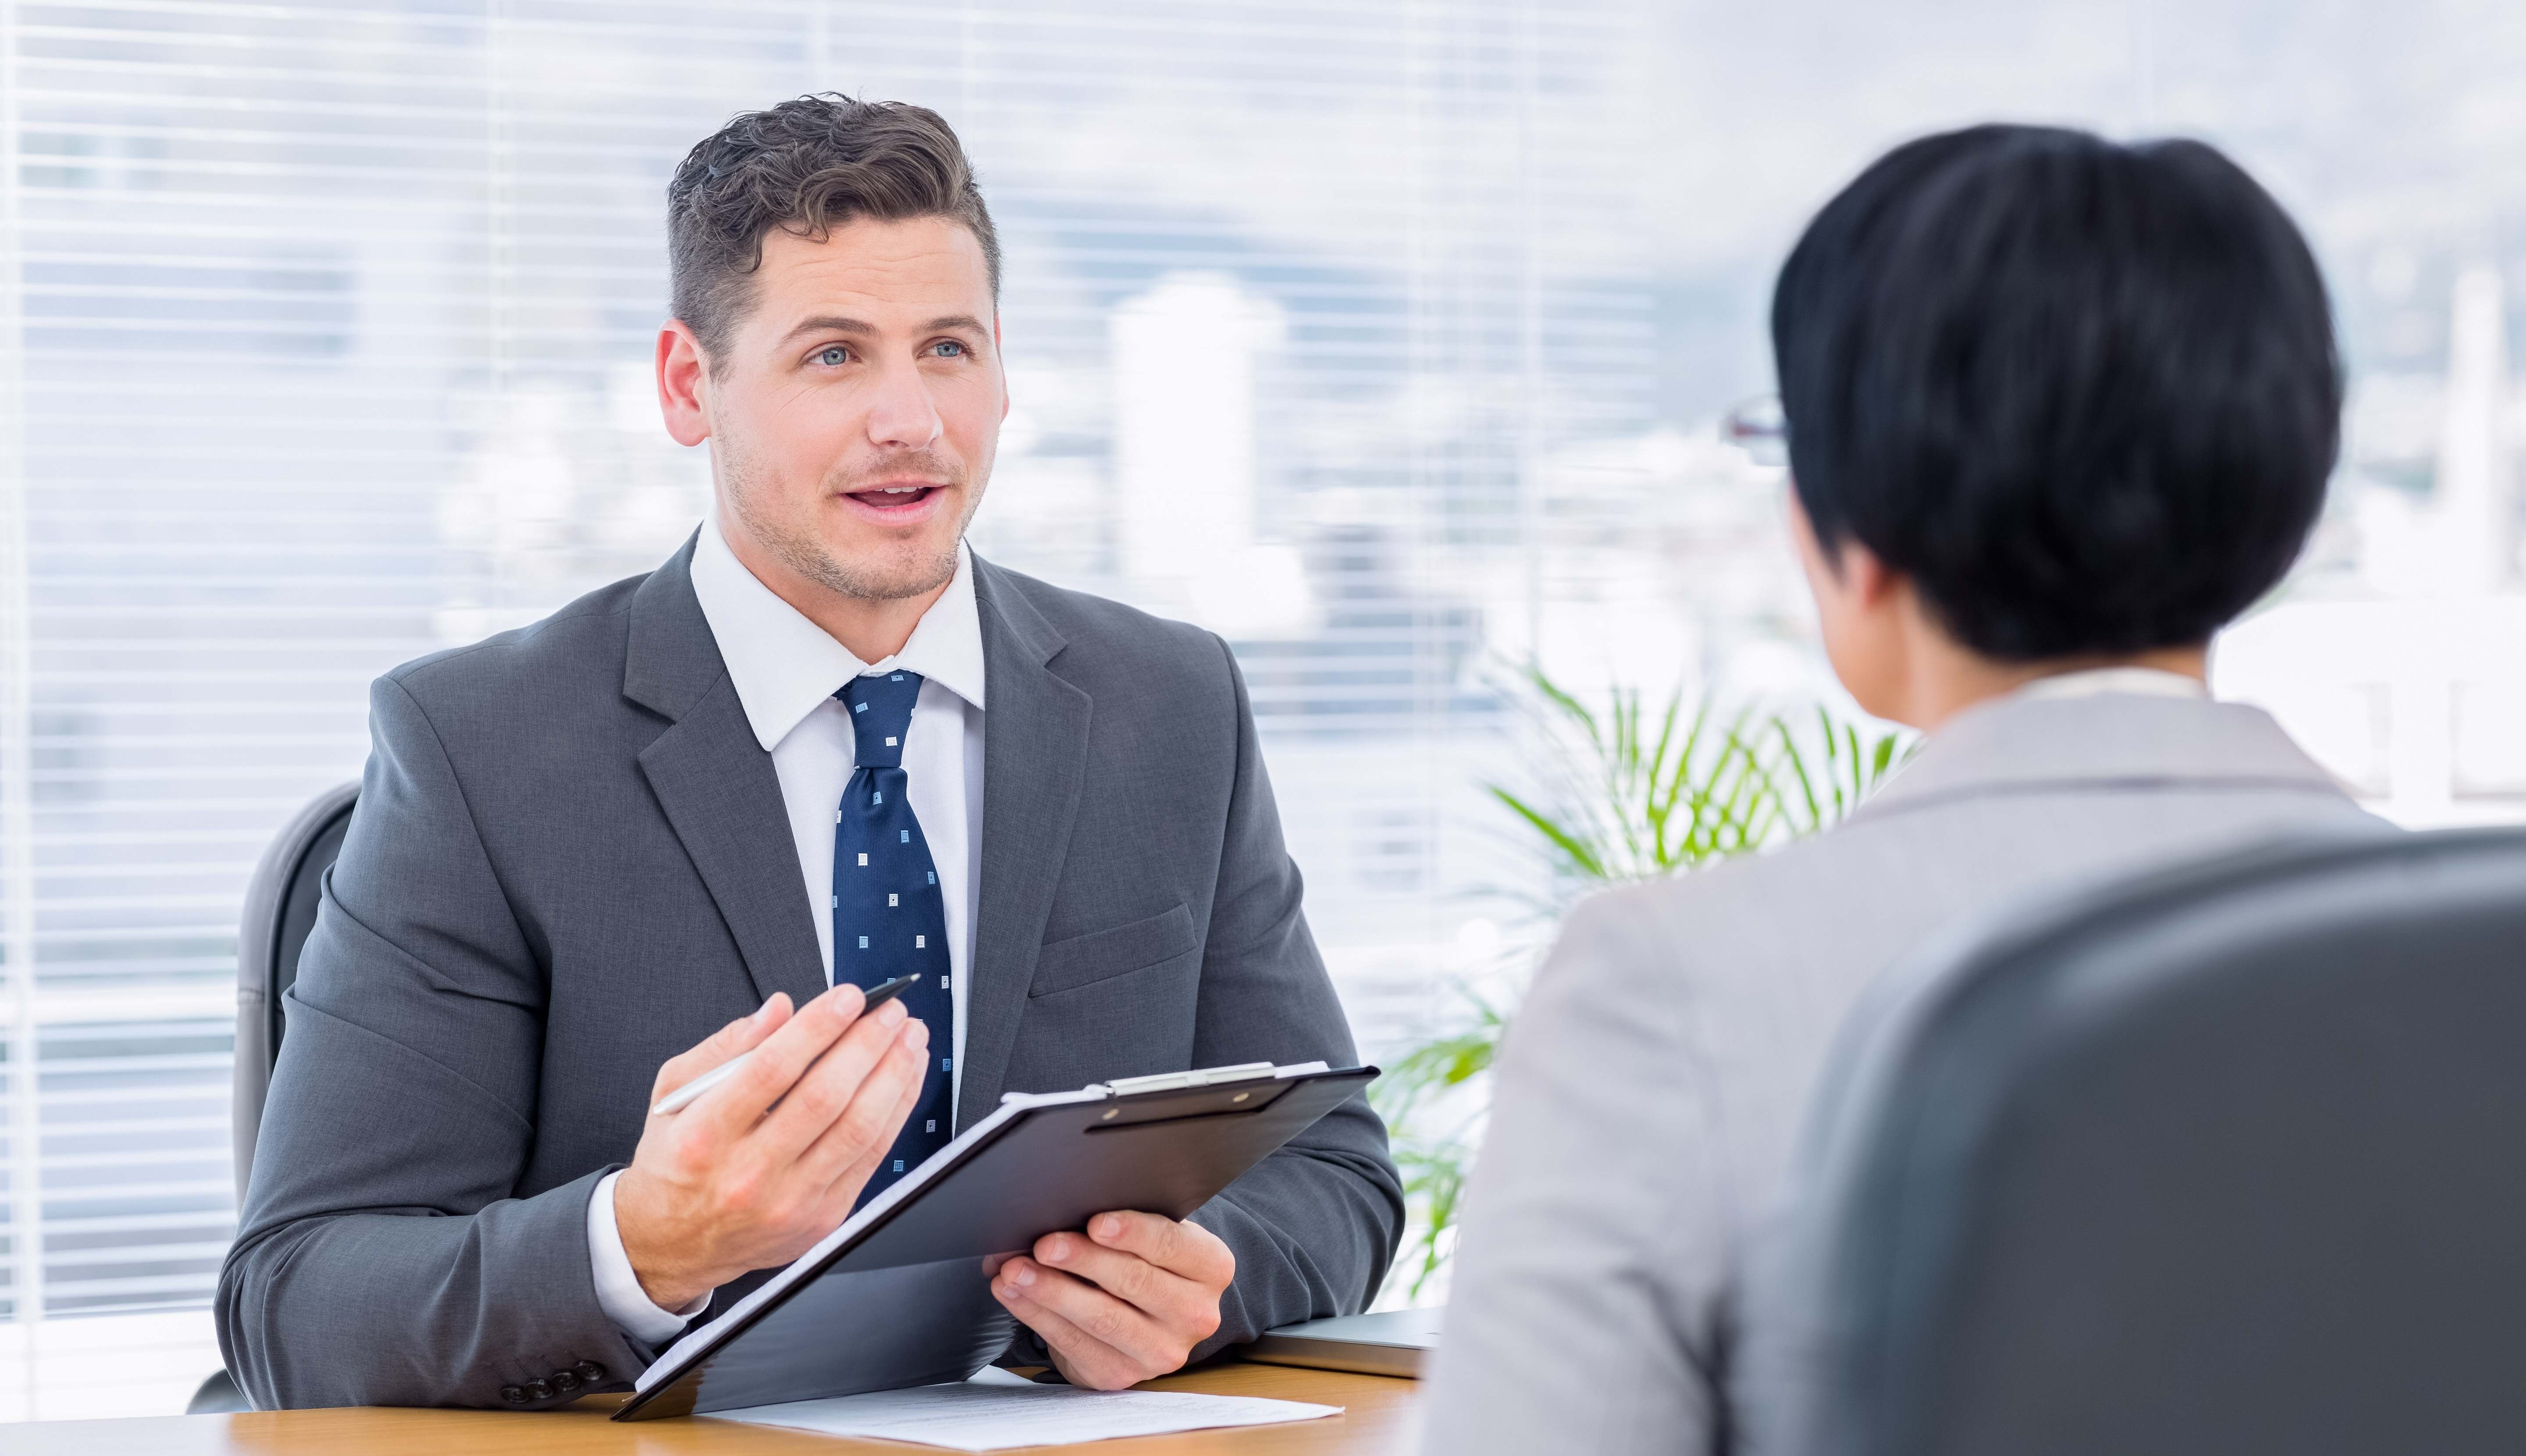 Prepare, To Be a Great Interviewer